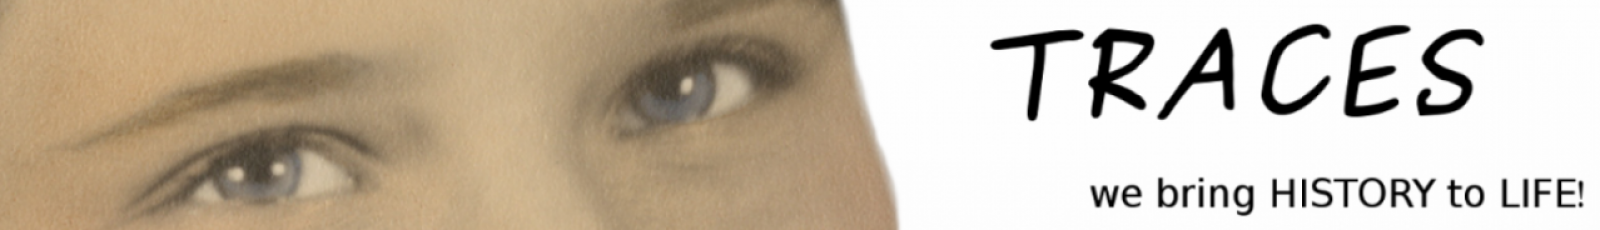 cropped-cropped-eyes1-e1450268586598.png